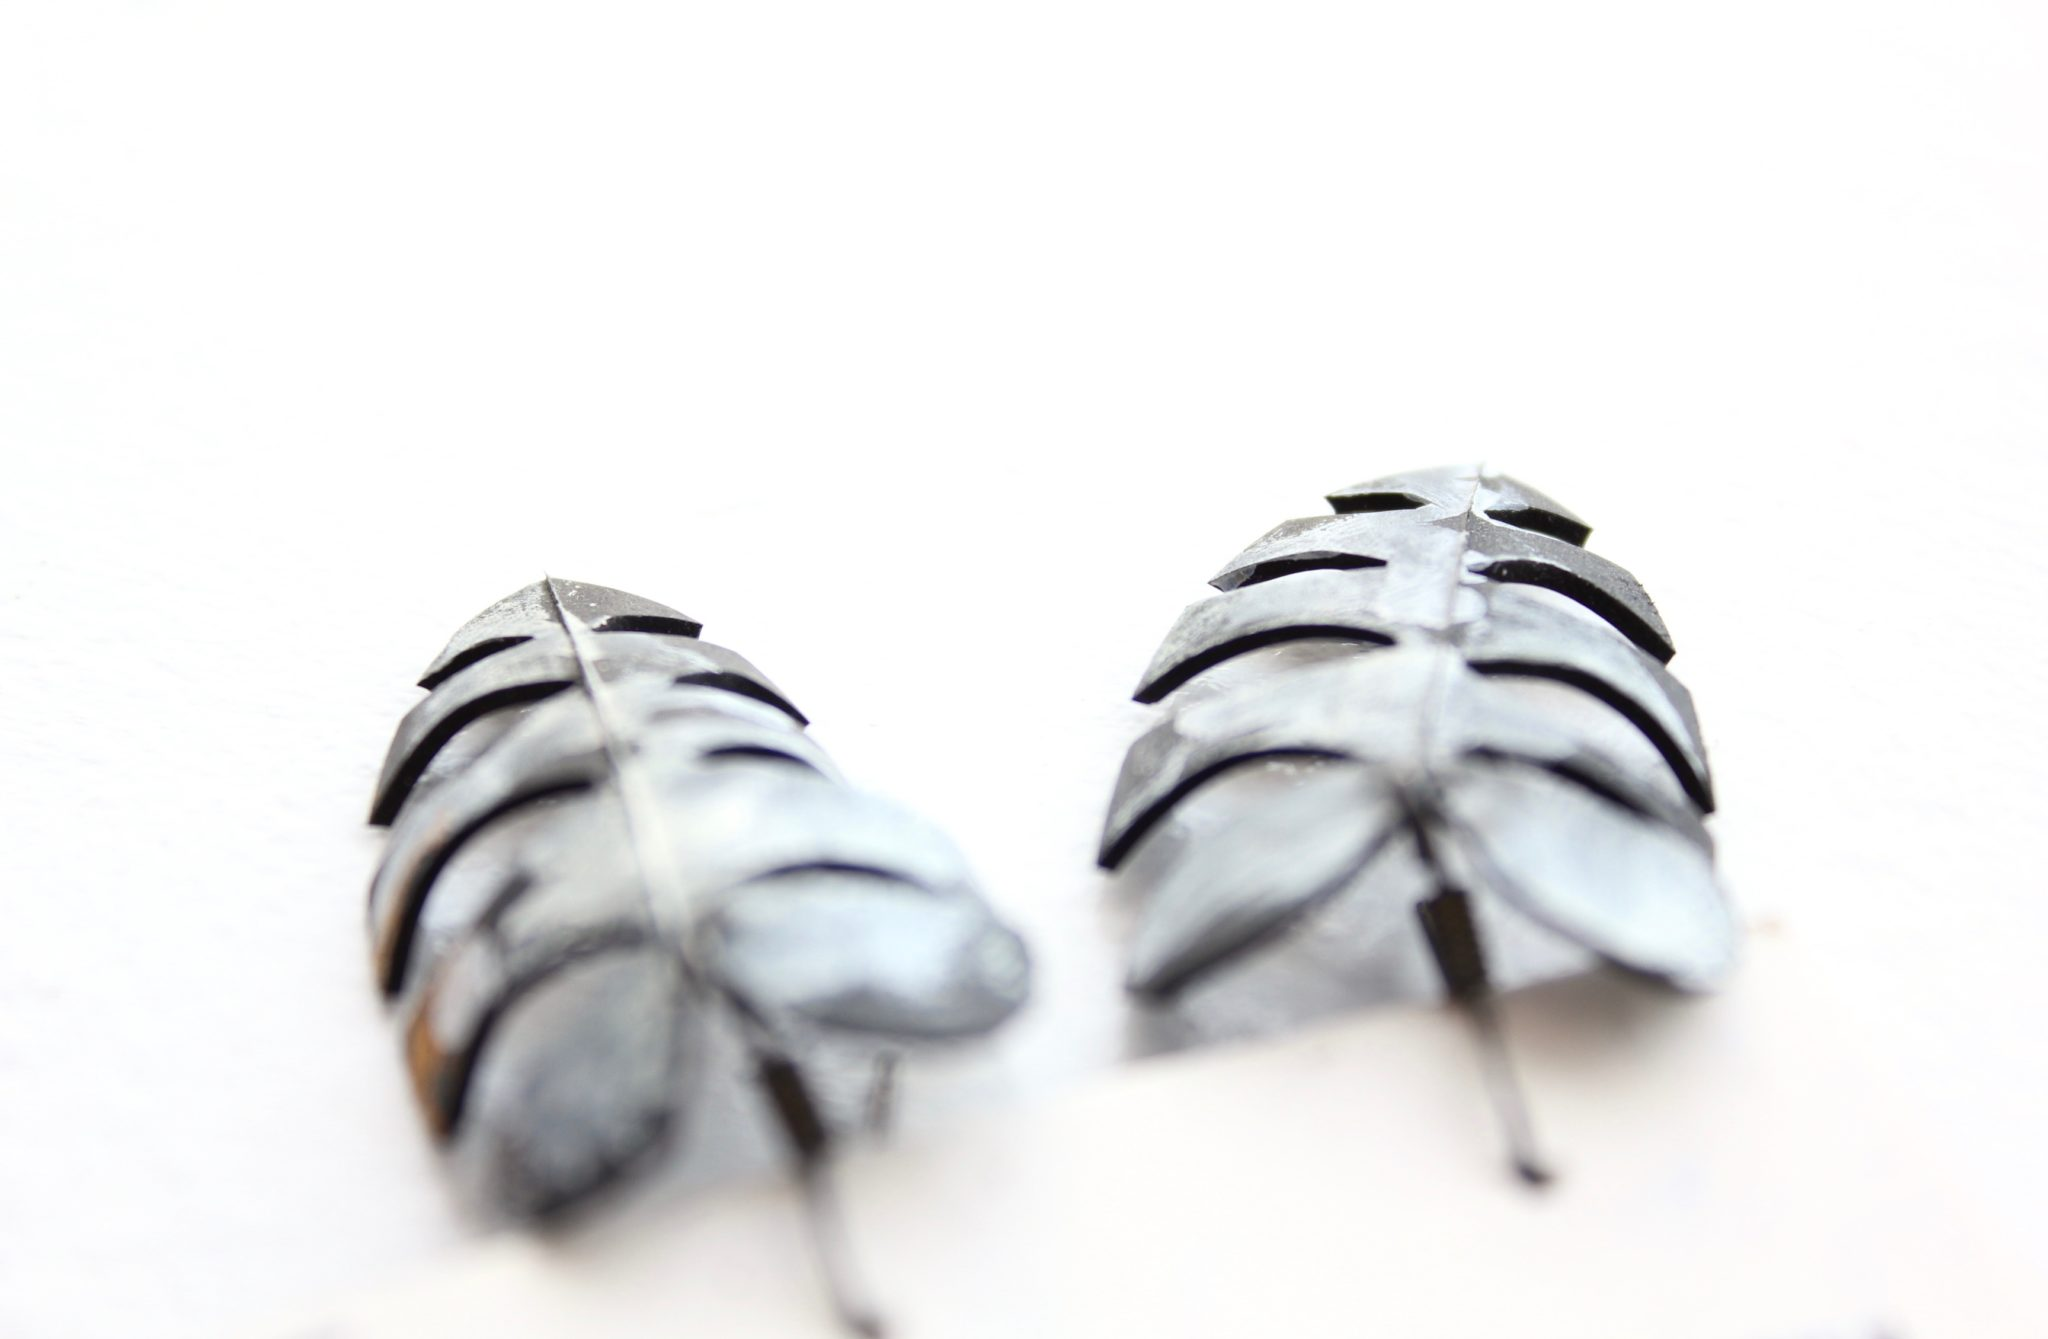 Detail of fern-shaped upcycled bike tube earrings by Tubed Jewellery